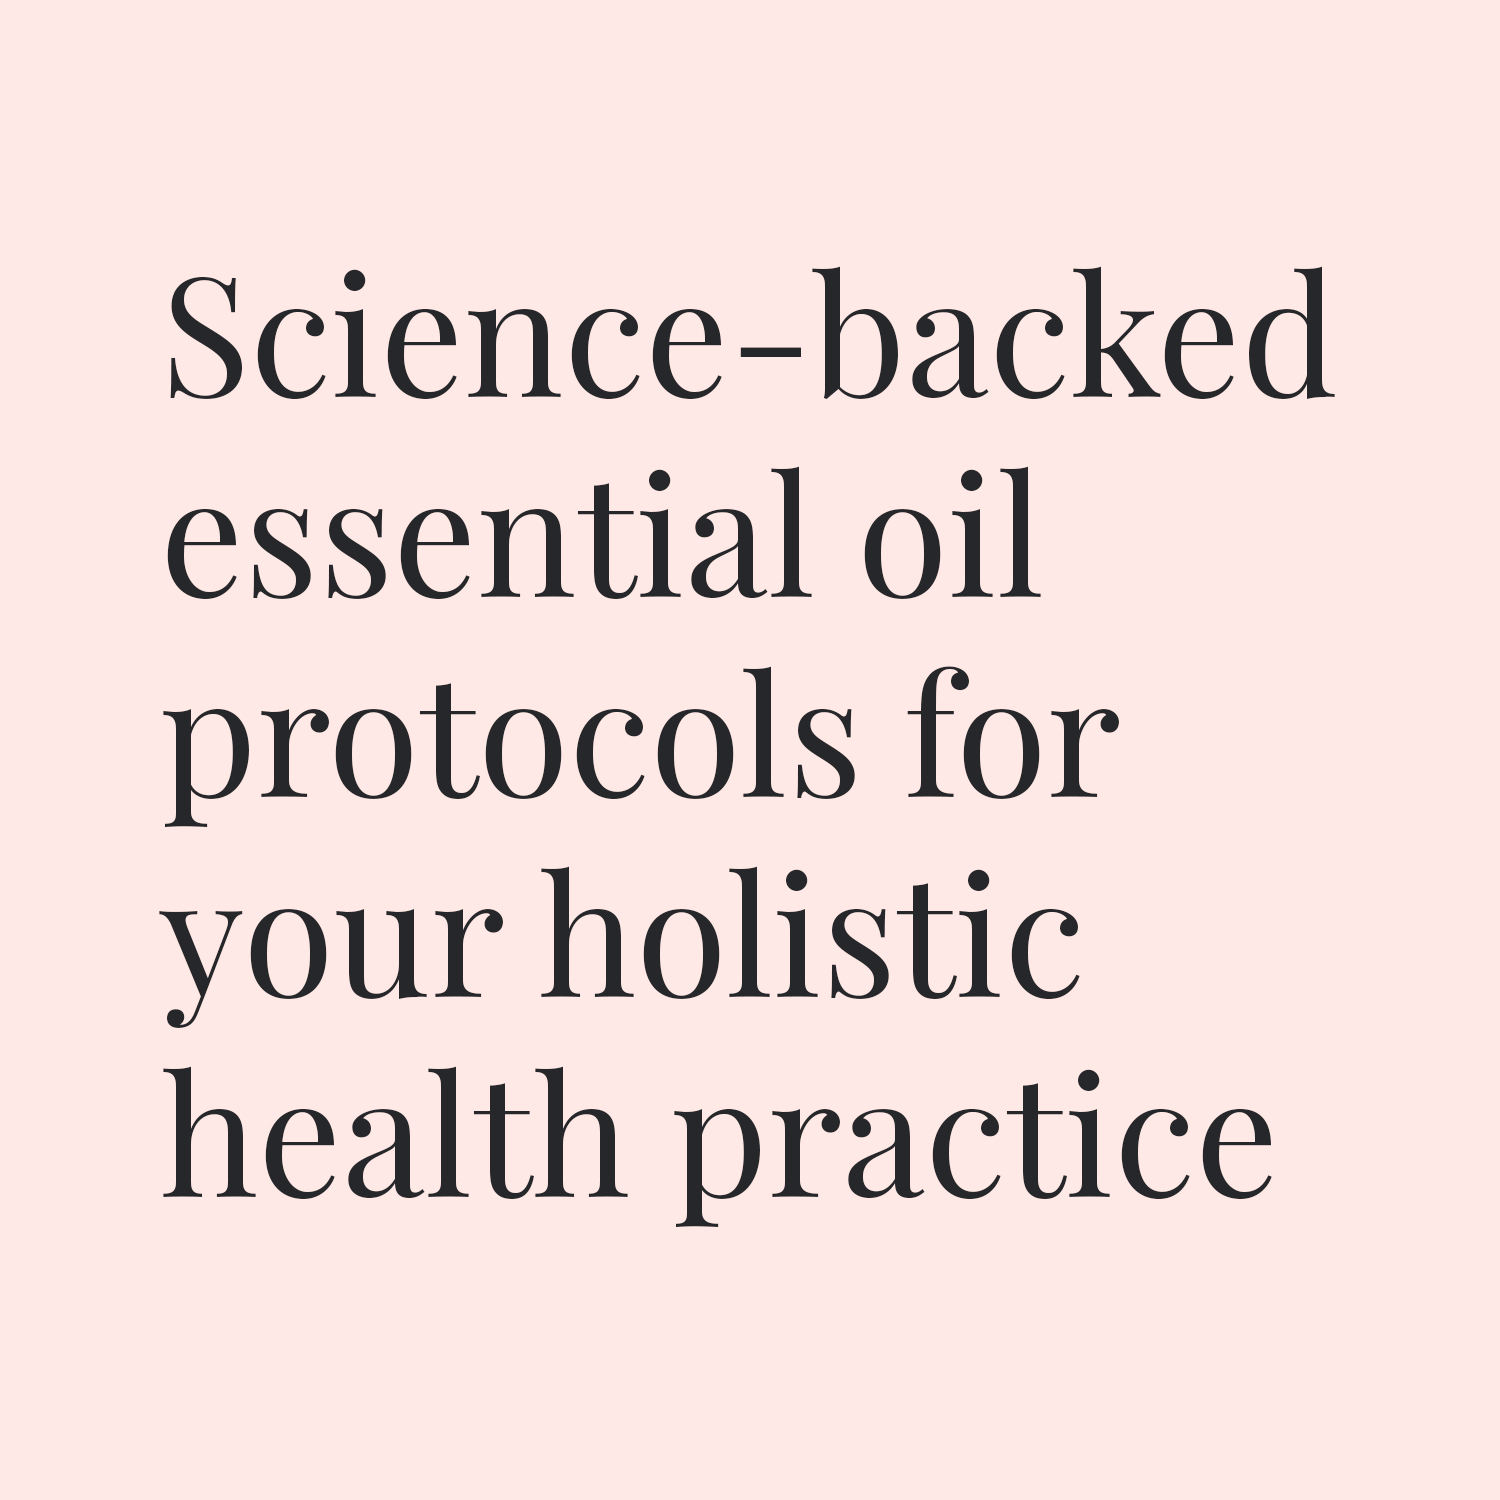 Science-backed EO protocols for your health biz.jpg